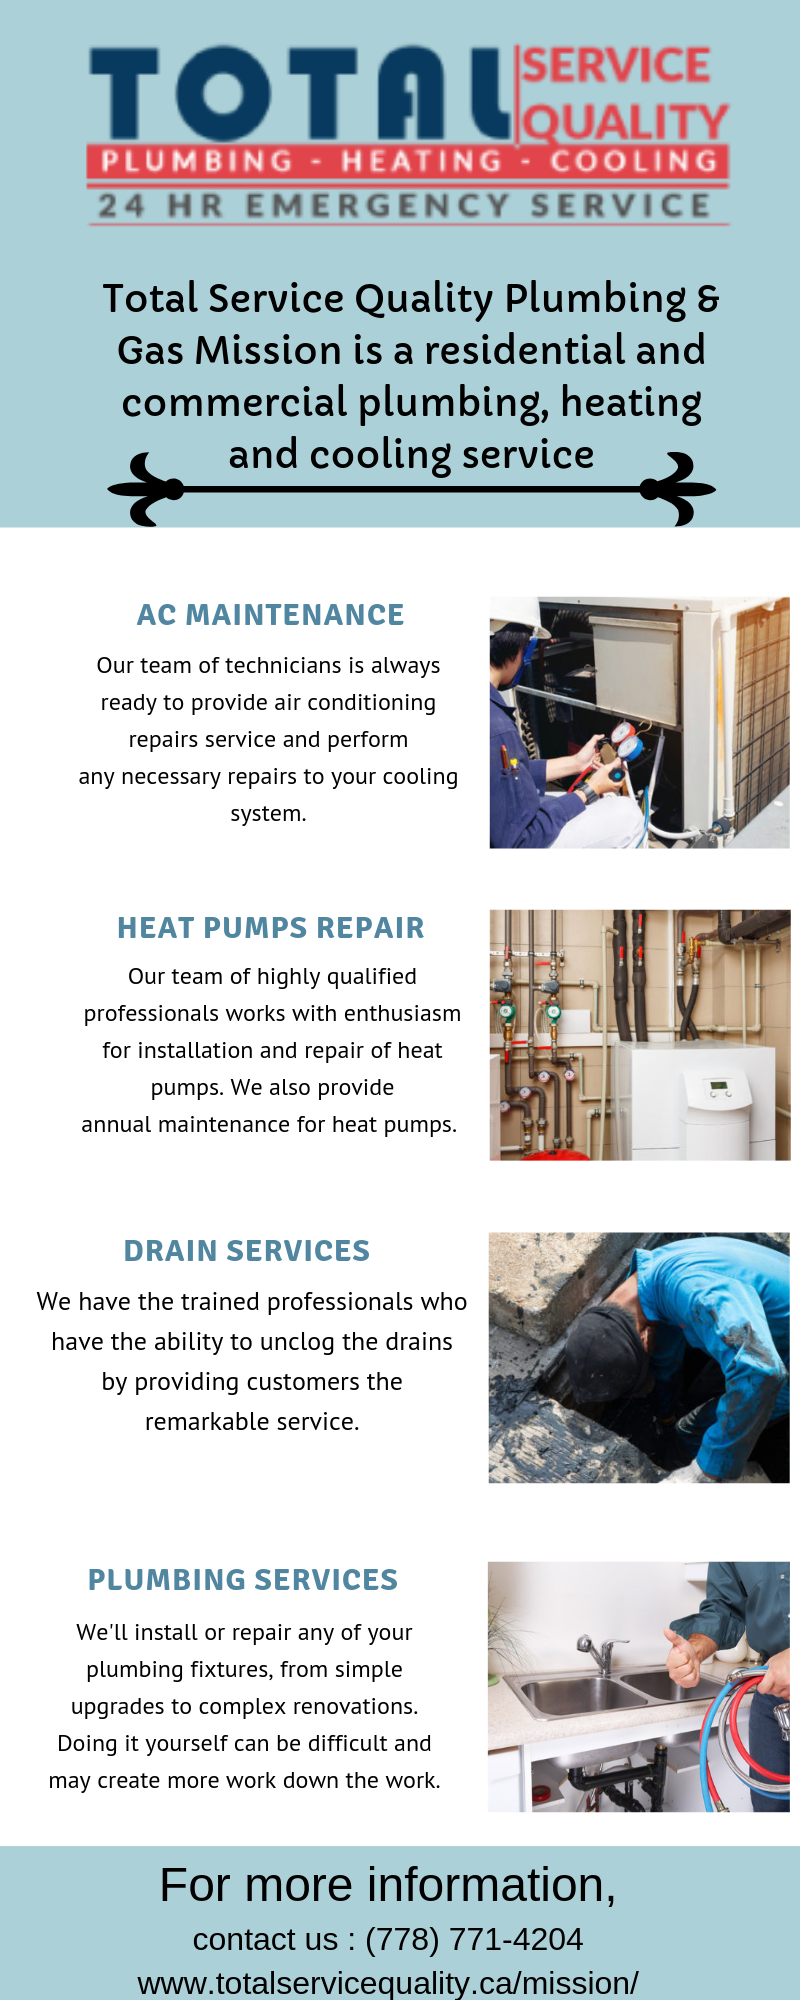 Best Services For Installations And Repairs For Hot Water Tank In